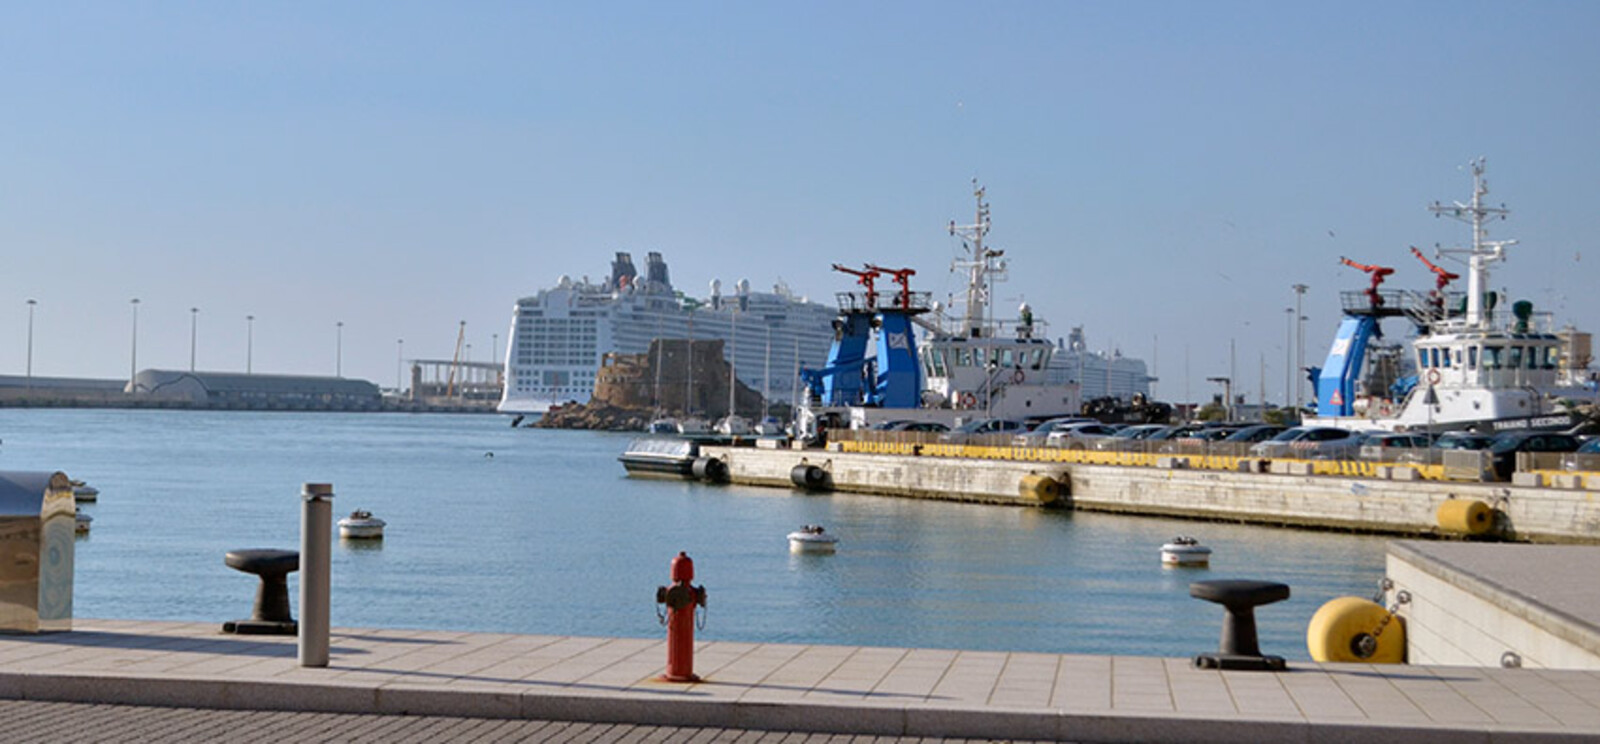 How to get from civitavecchia port to rome all the - Transfer from rome to civitavecchia port ...